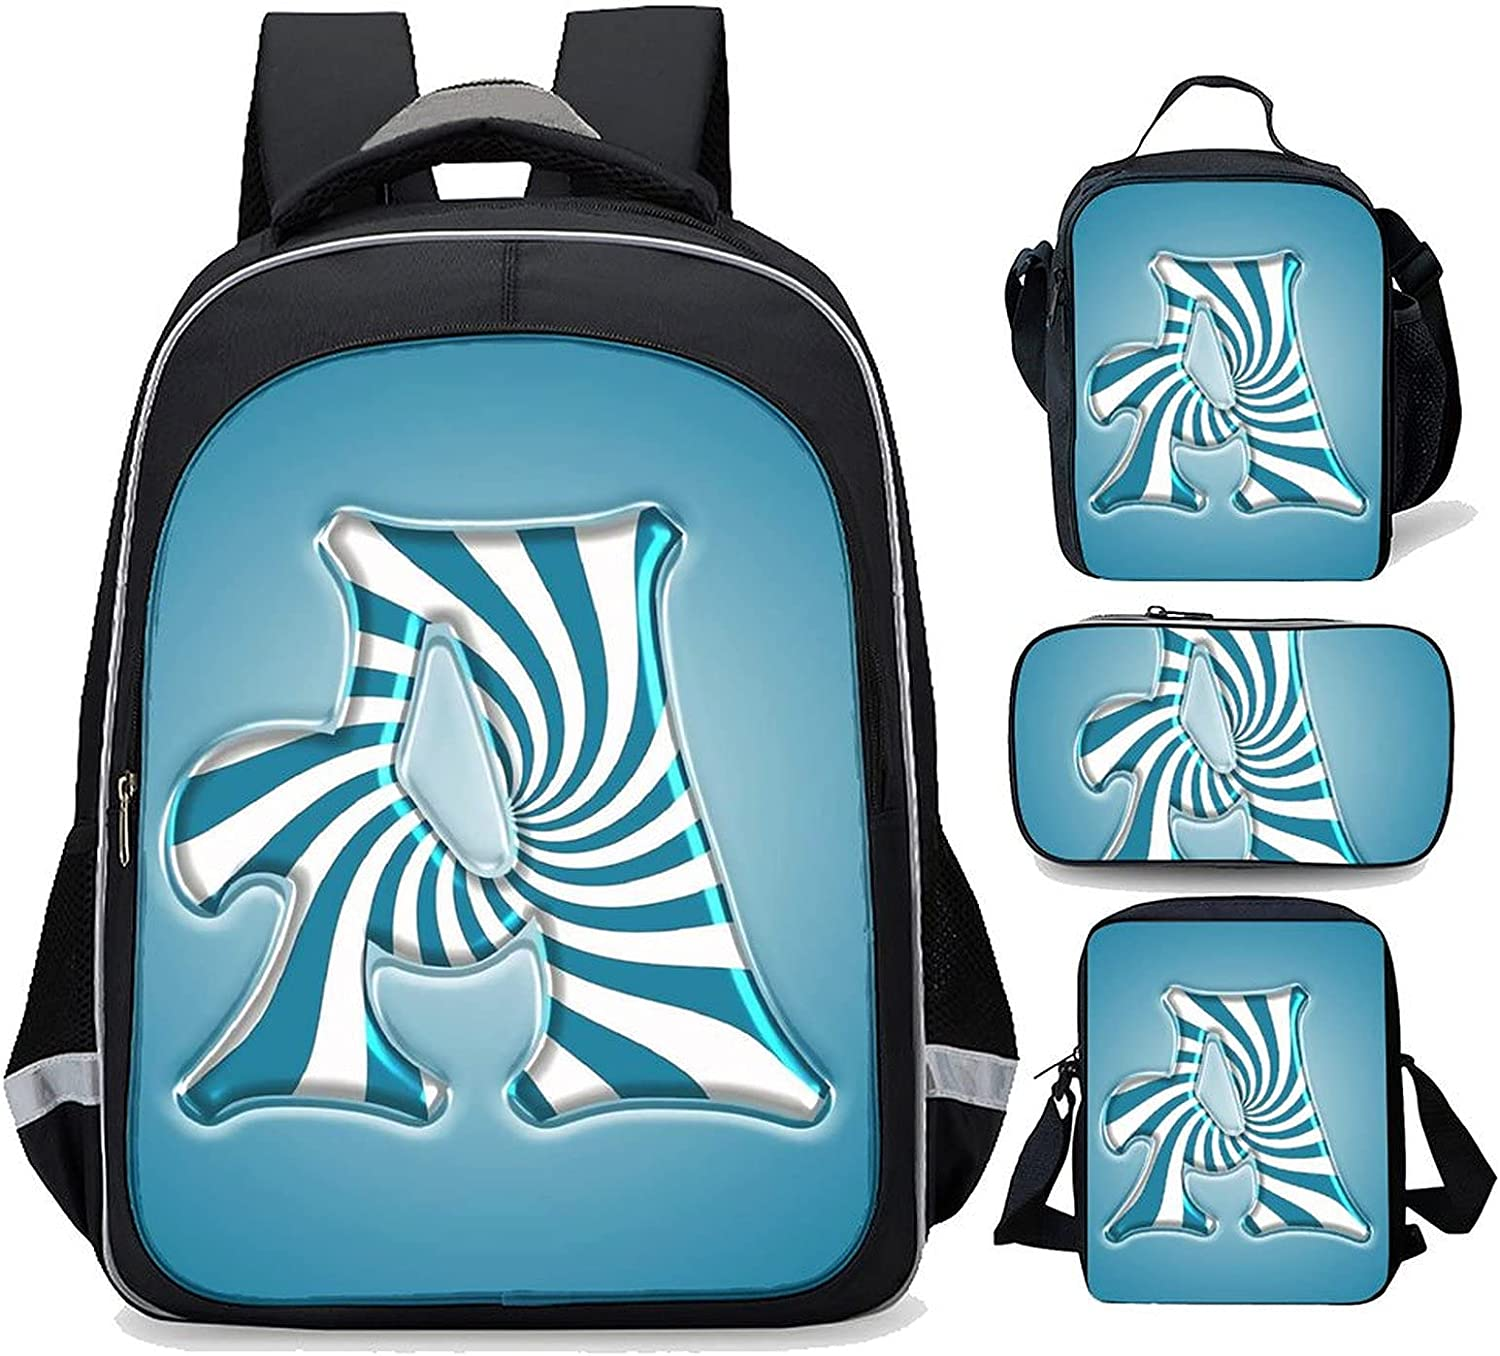 BackpackBlue Letter A MonogramKid School Lunch Backpack overseas Popular product bag